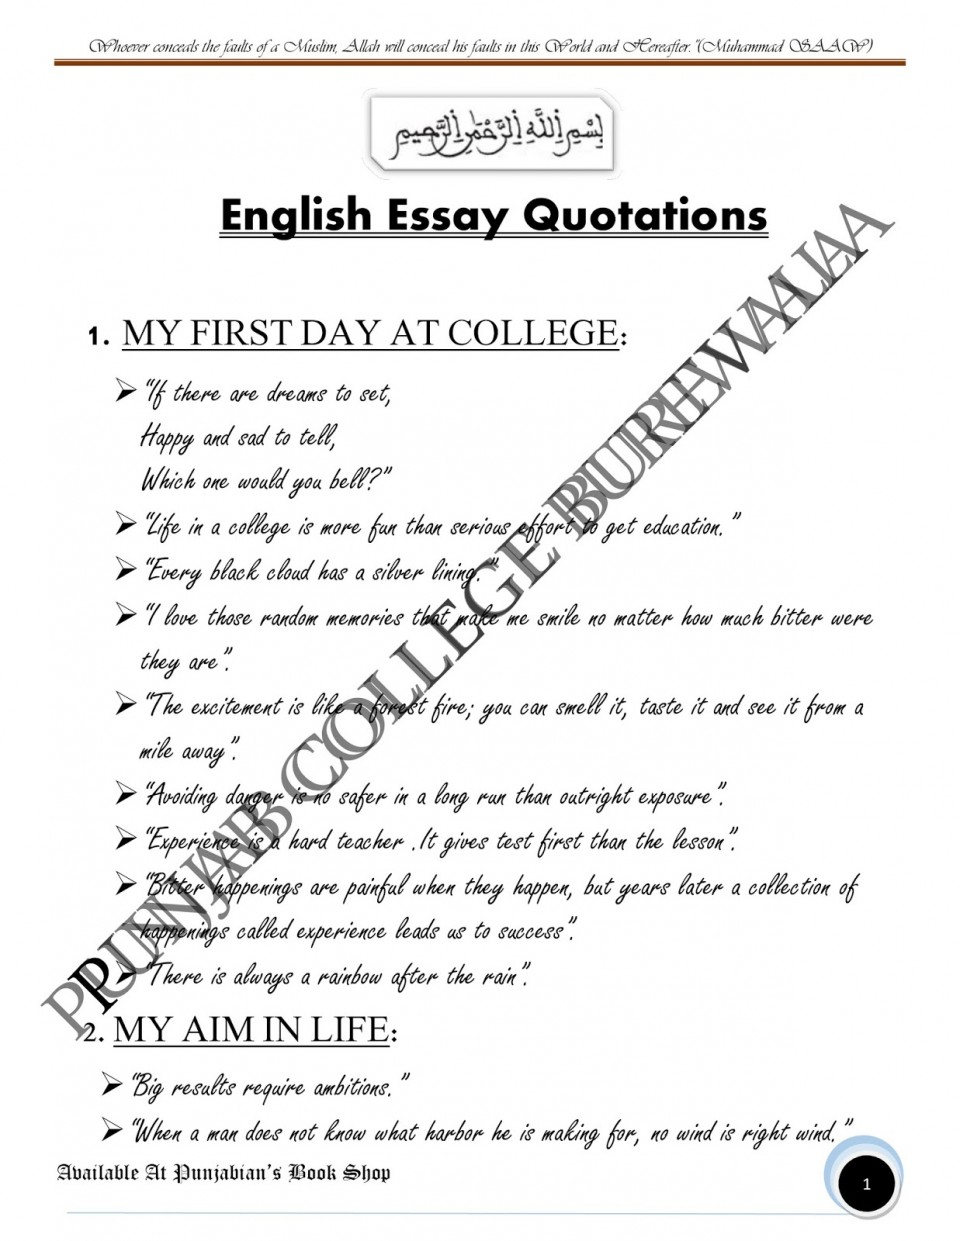 005 Quotations5bconverted5d Page Essay Example First Day Magnificent College At Quotations My Pdf 960